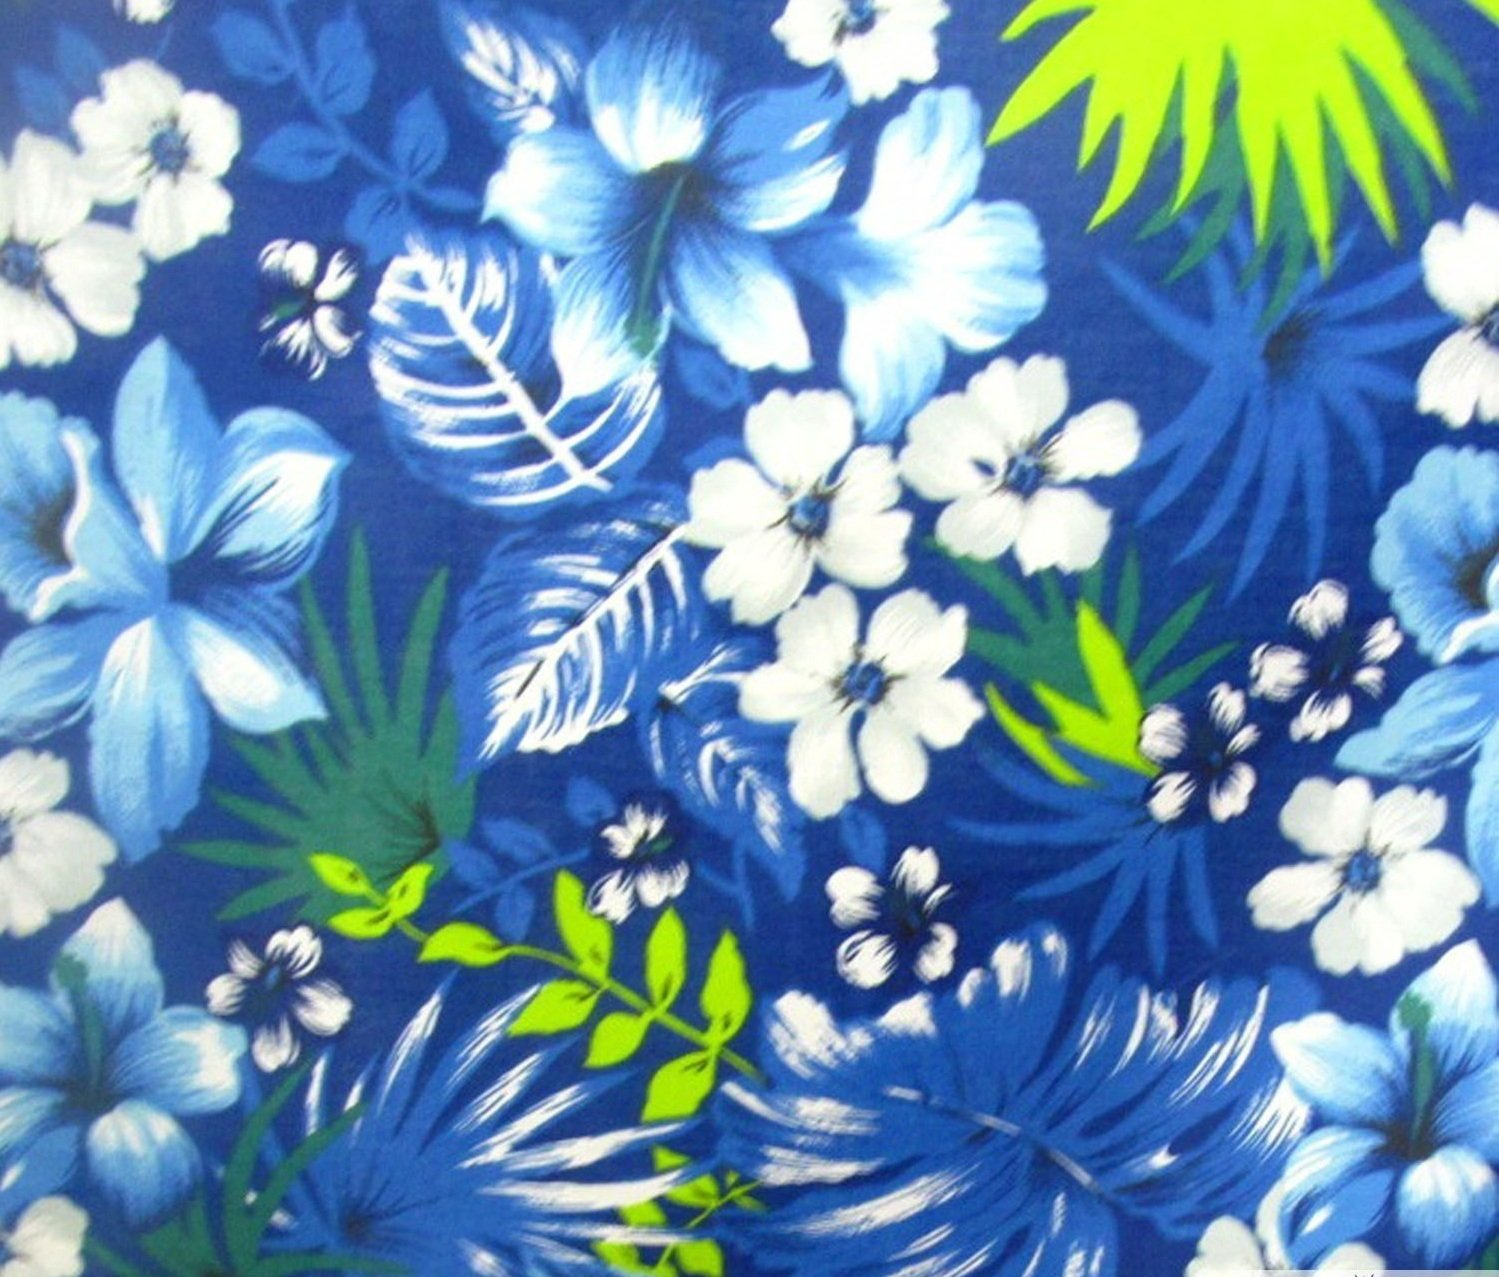 Hawaiian Royal Blue Poly Cotton 58 Inch Fabric By the Yard (F.E.つ) by The Fabric Exchange   B00J358MDK